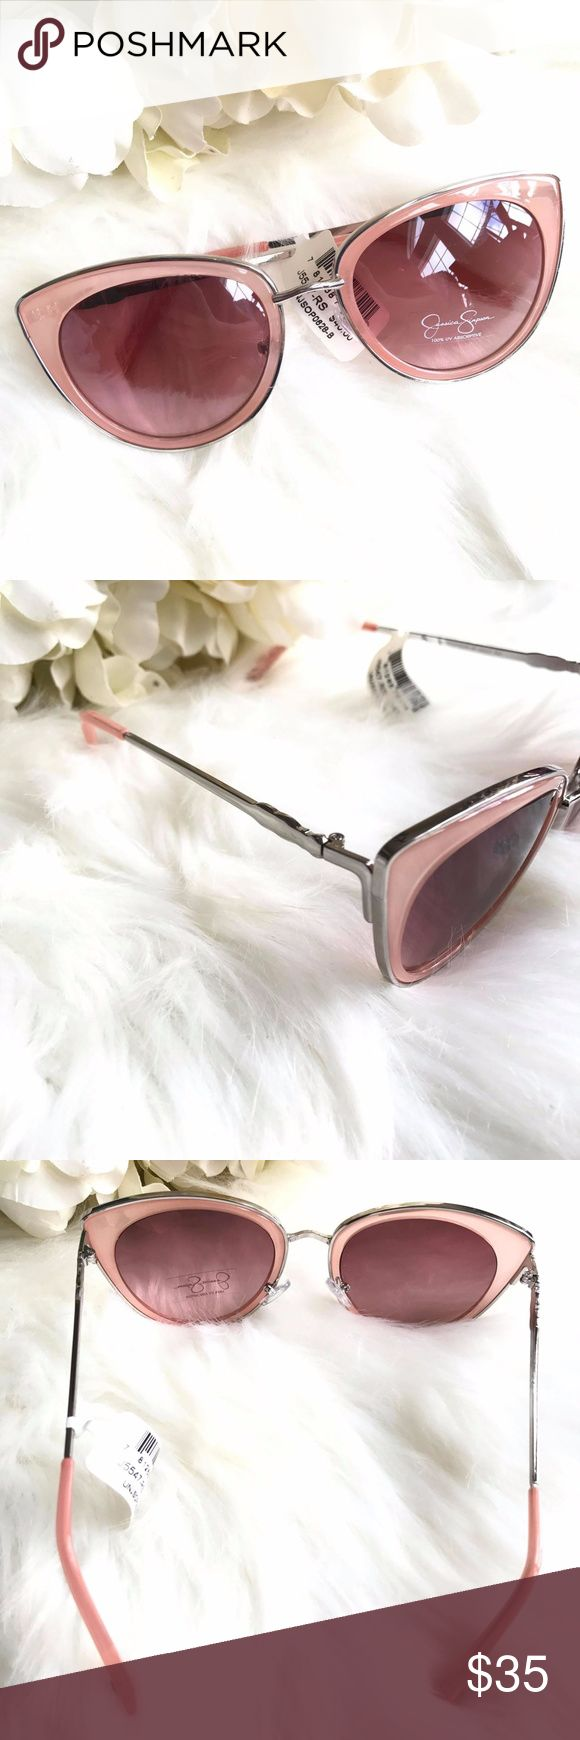 Jessica Simpson Pink Semi Cat Eye Sunglasses Brand New with Tag Jessica Simpson Pink Semi Cat Eye Sunglasses Retail $40.00 15% off 3 or more Items! Bundle up and save!No Trades please Reasonable offers are welcome. *Christian J. -Posh Ambassador;Posh Compliant *800+ Items listed, check out and shop! Jessica Simpson Accessories Sunglasses